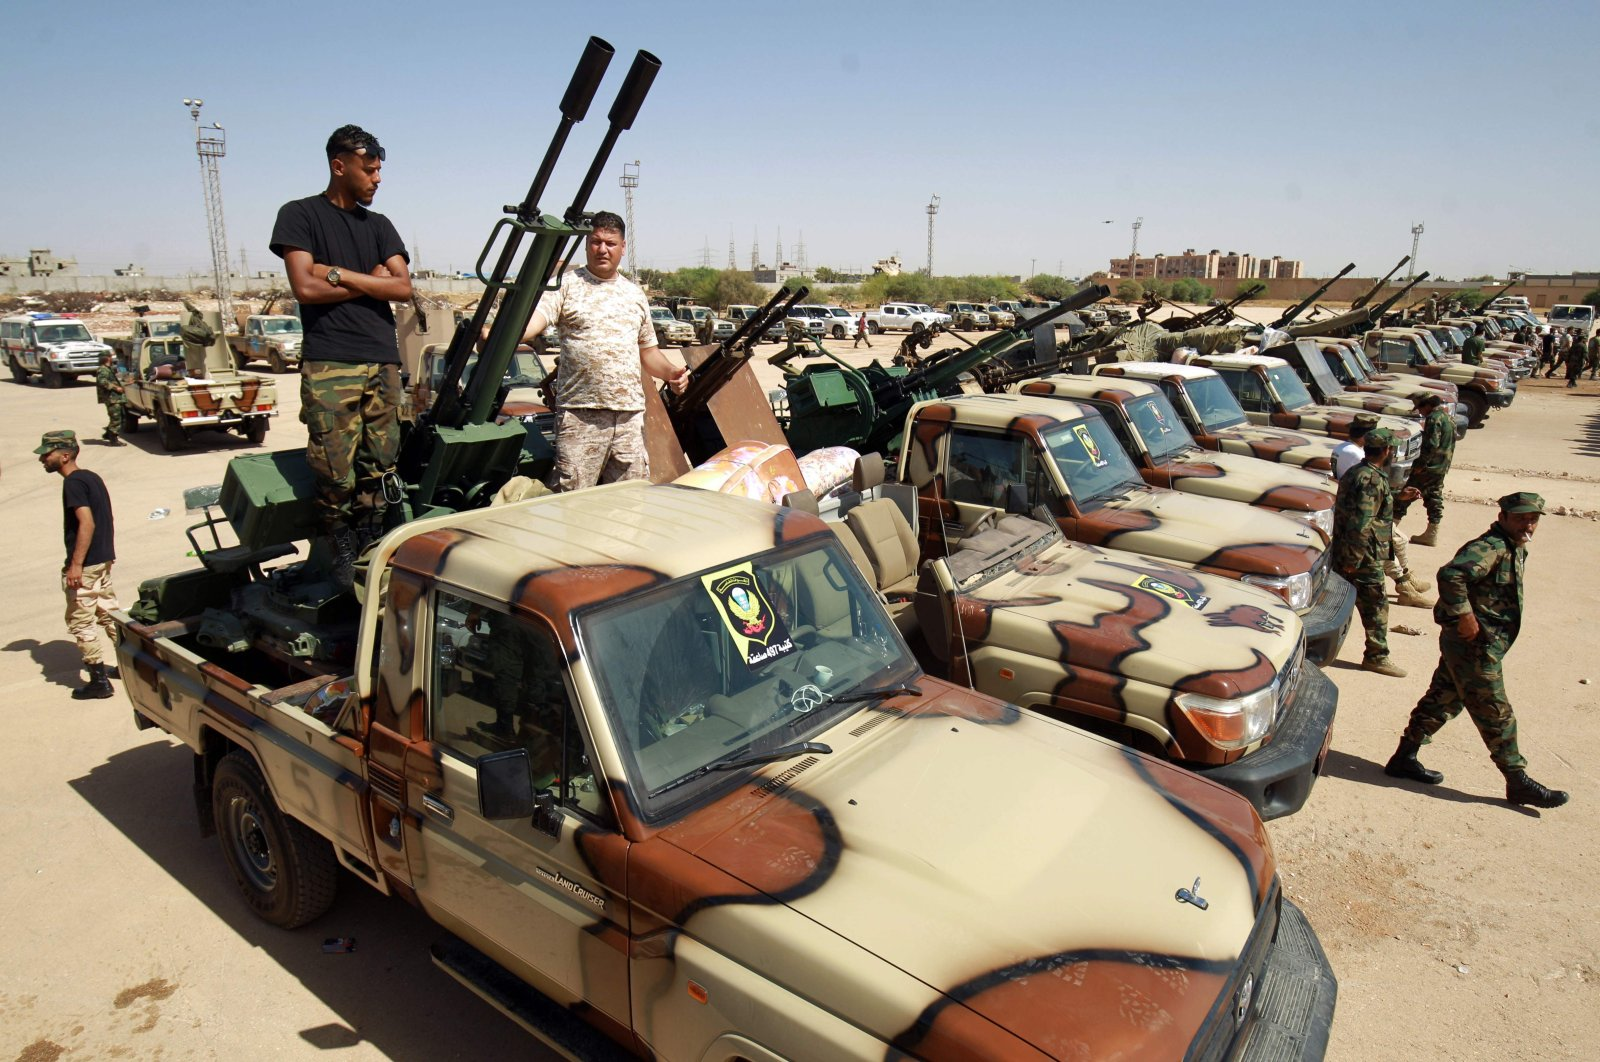 Members of putschist Gen. Khalifa Haftar's forces gather on their way to reportedly back up fellow fighters on the front line west of the city of Sirte facing off against the military loyal to the Government of National Accord (GNA), Benghazi, Libya, June 18, 2020. (AFP Photo)